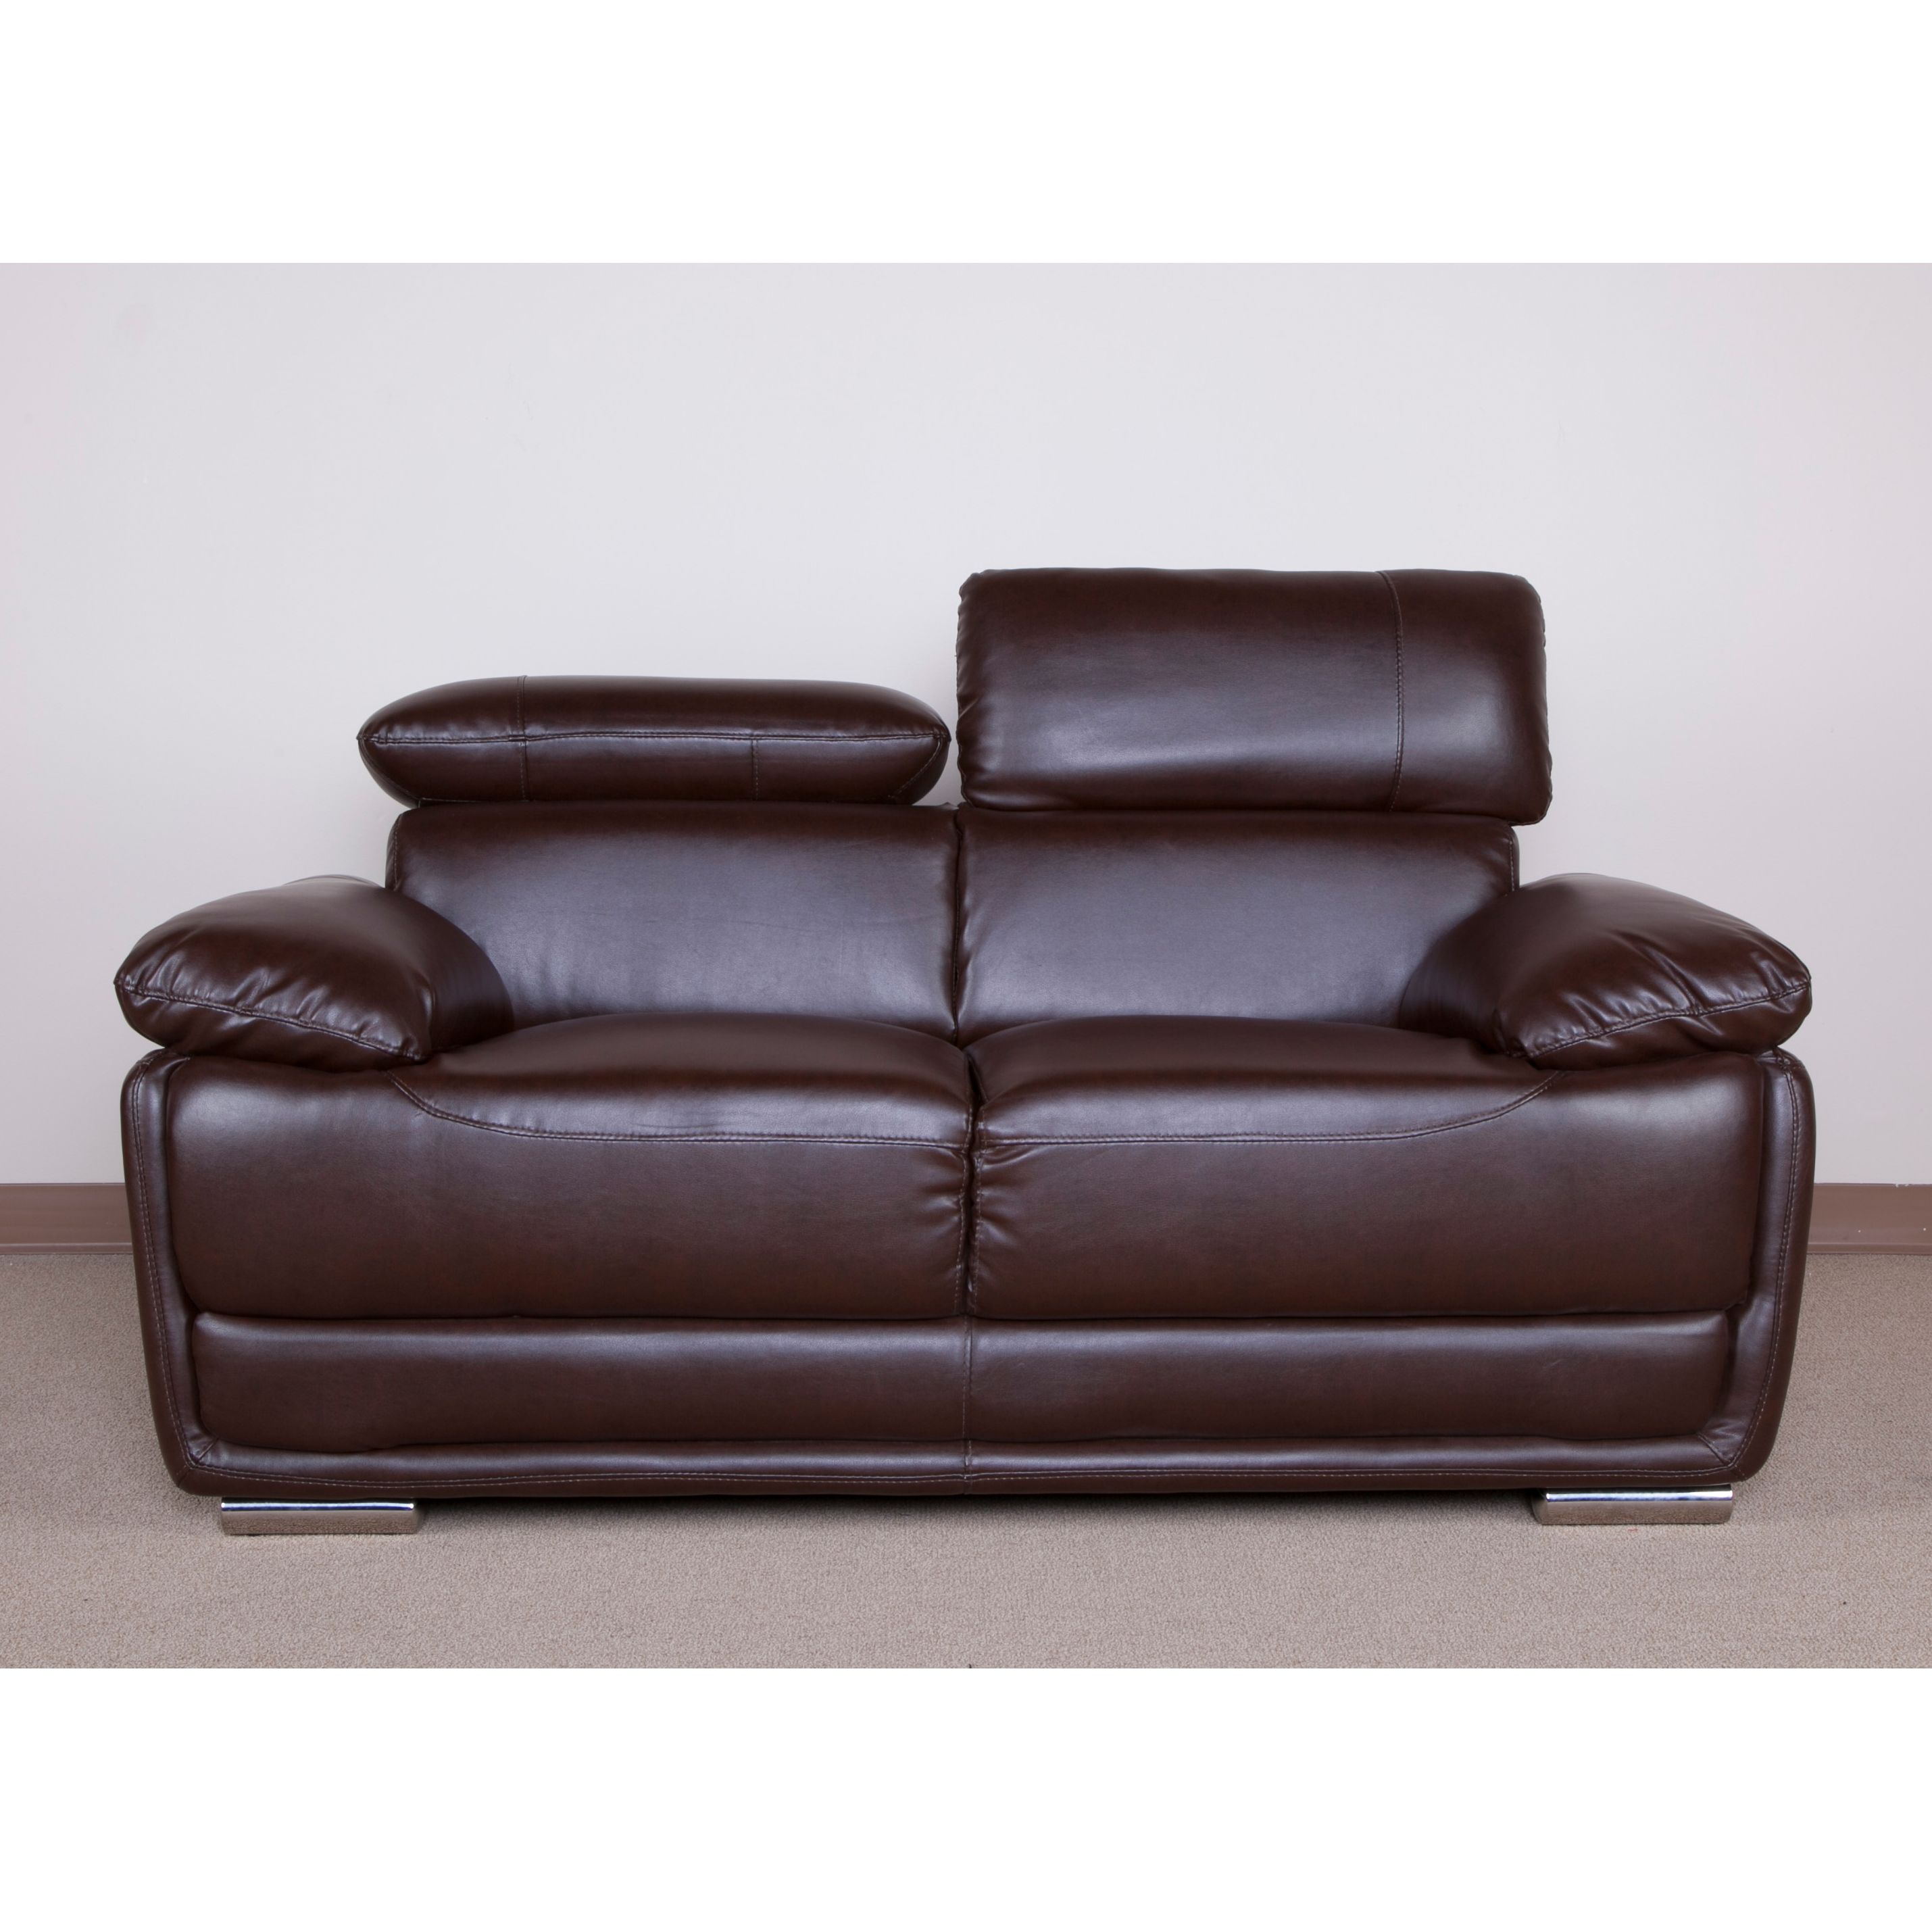 Give your home a fresh new look with this Kyle Bonded Leather Loveseat. This chair features a beautiful brown Bonded Leather upholstery with chromed feet and a soft, comfortable seat.